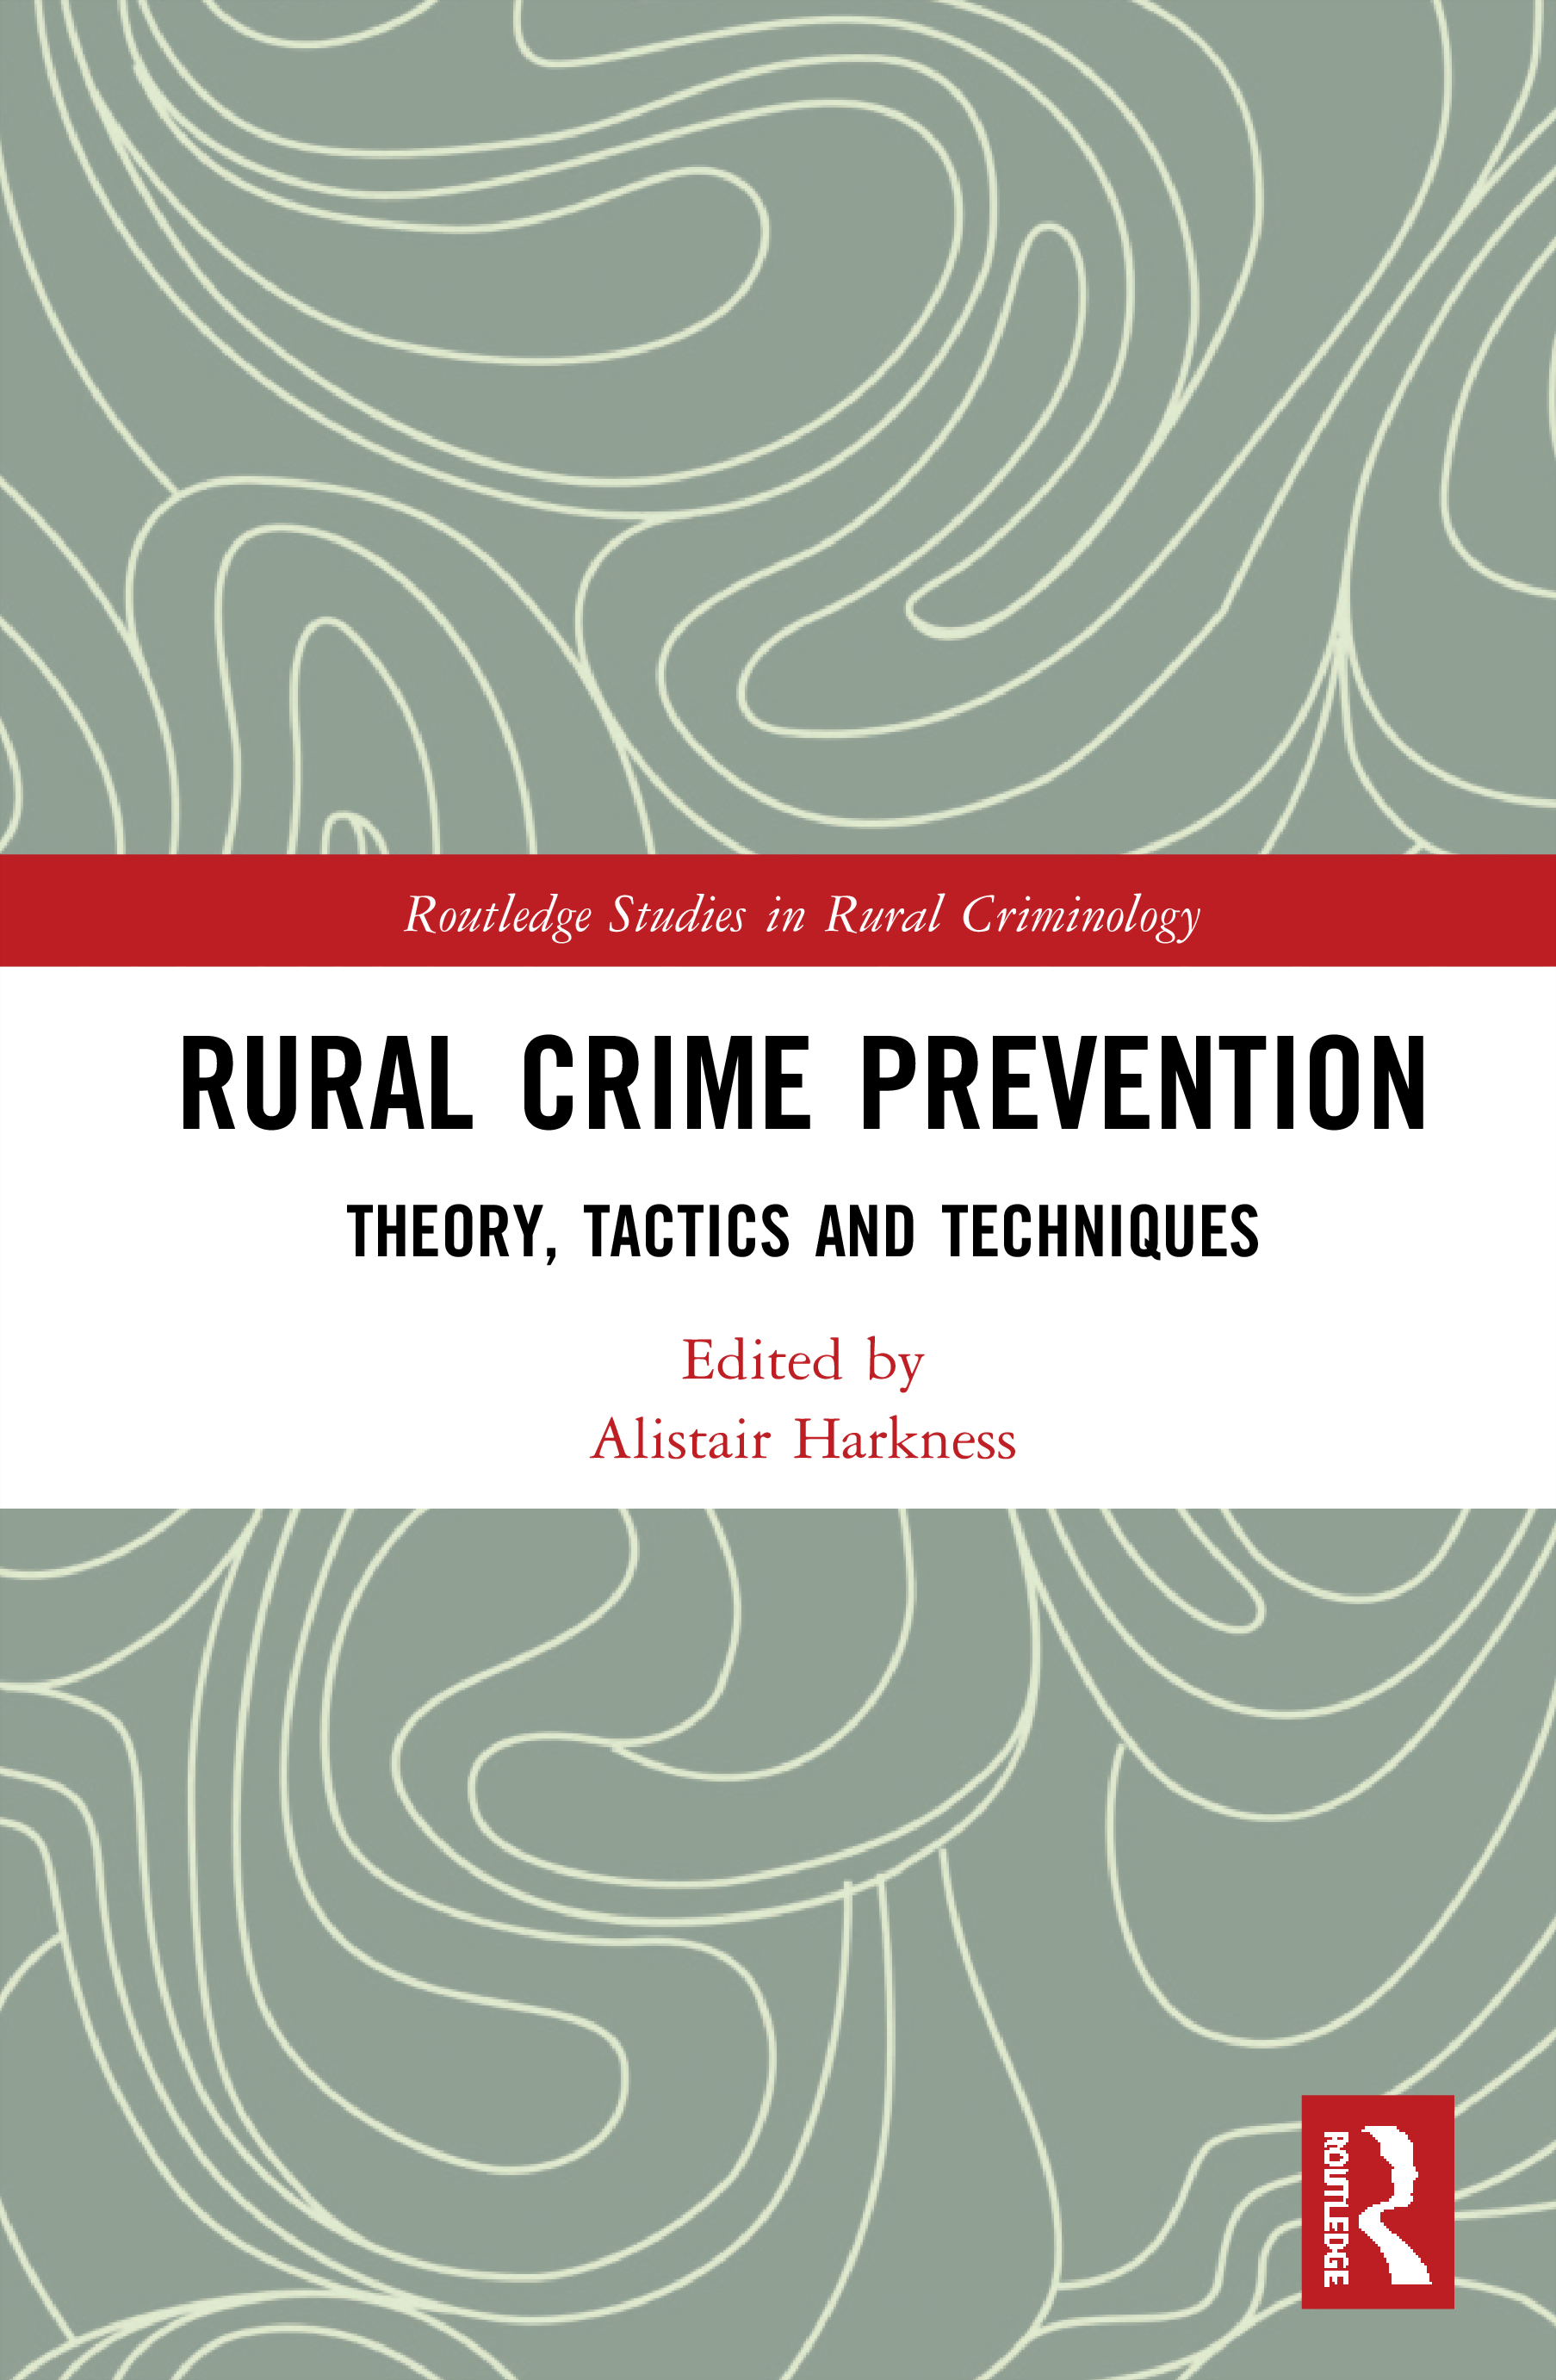 Rural Crime Prevention: Theory, Tactics and Techniques book cover